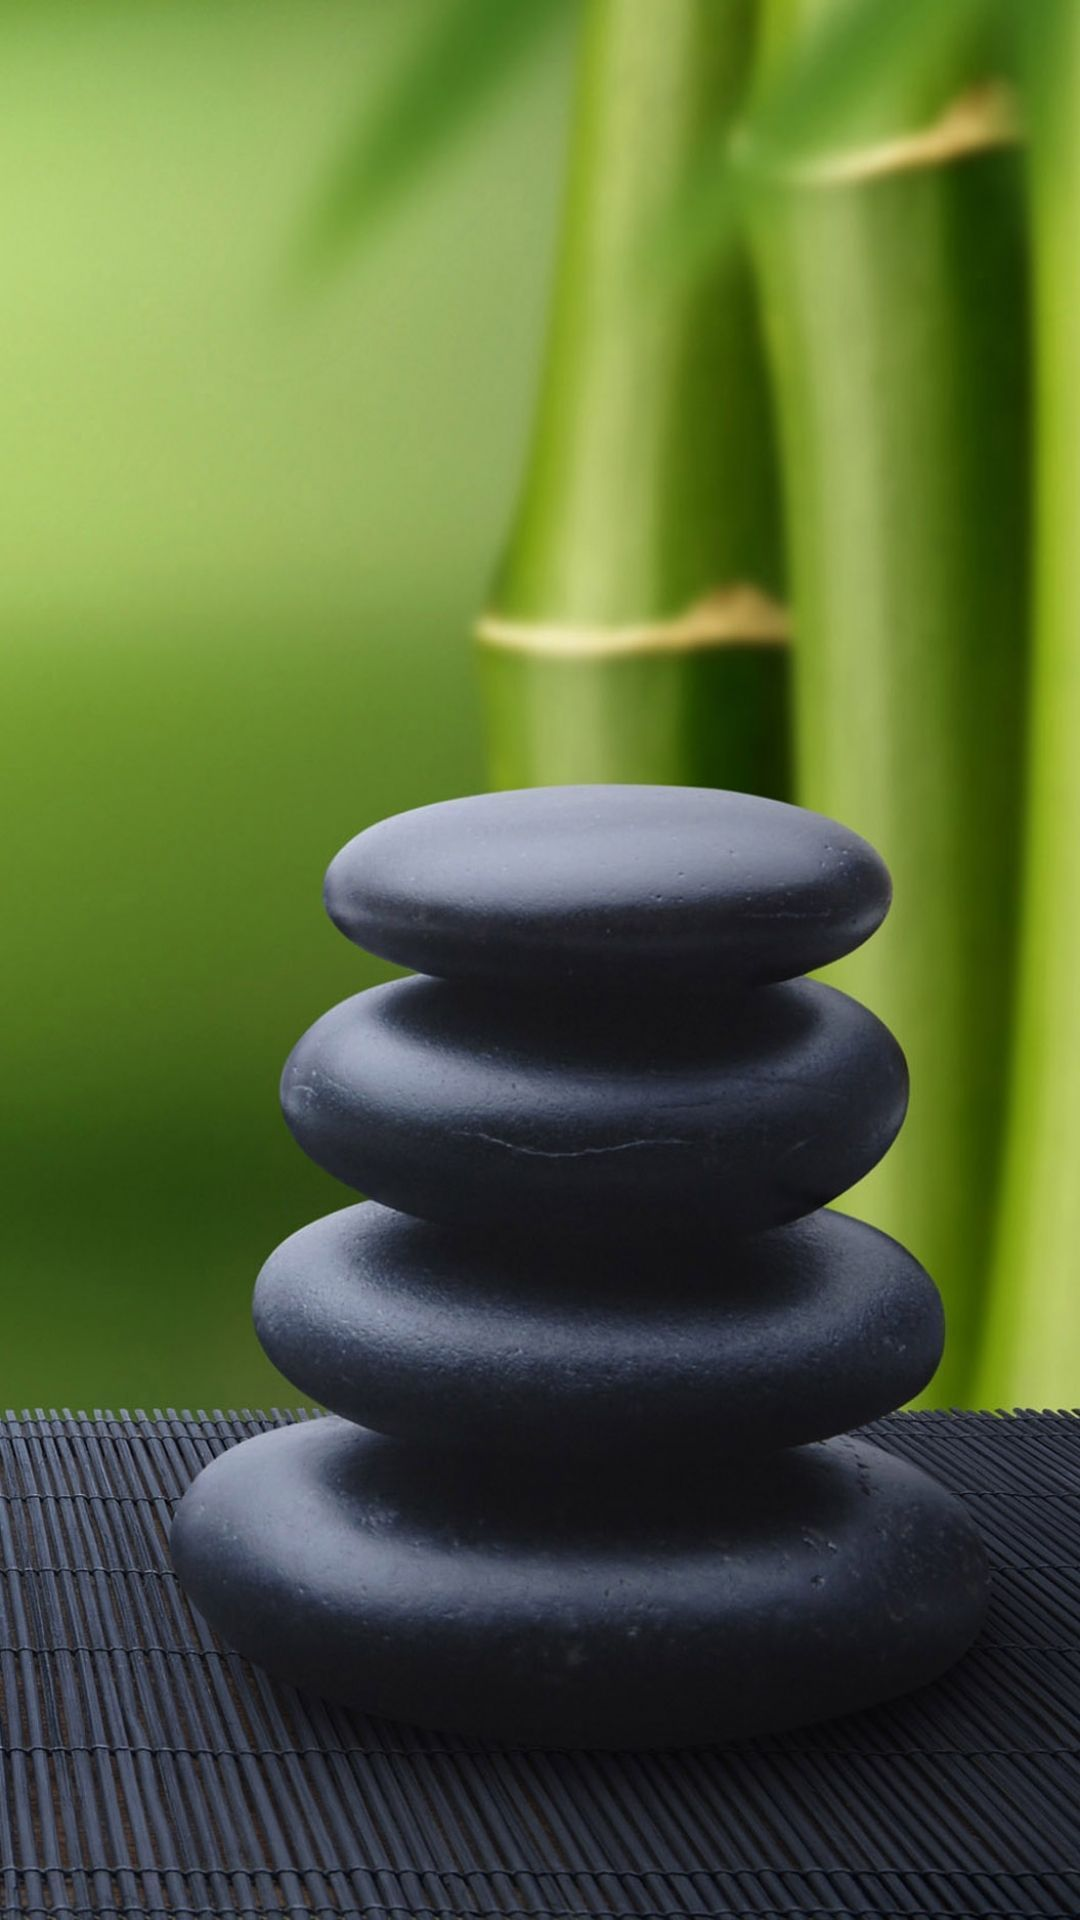 Awesome Zen iPhone Wallpapers - WallpaperAccess